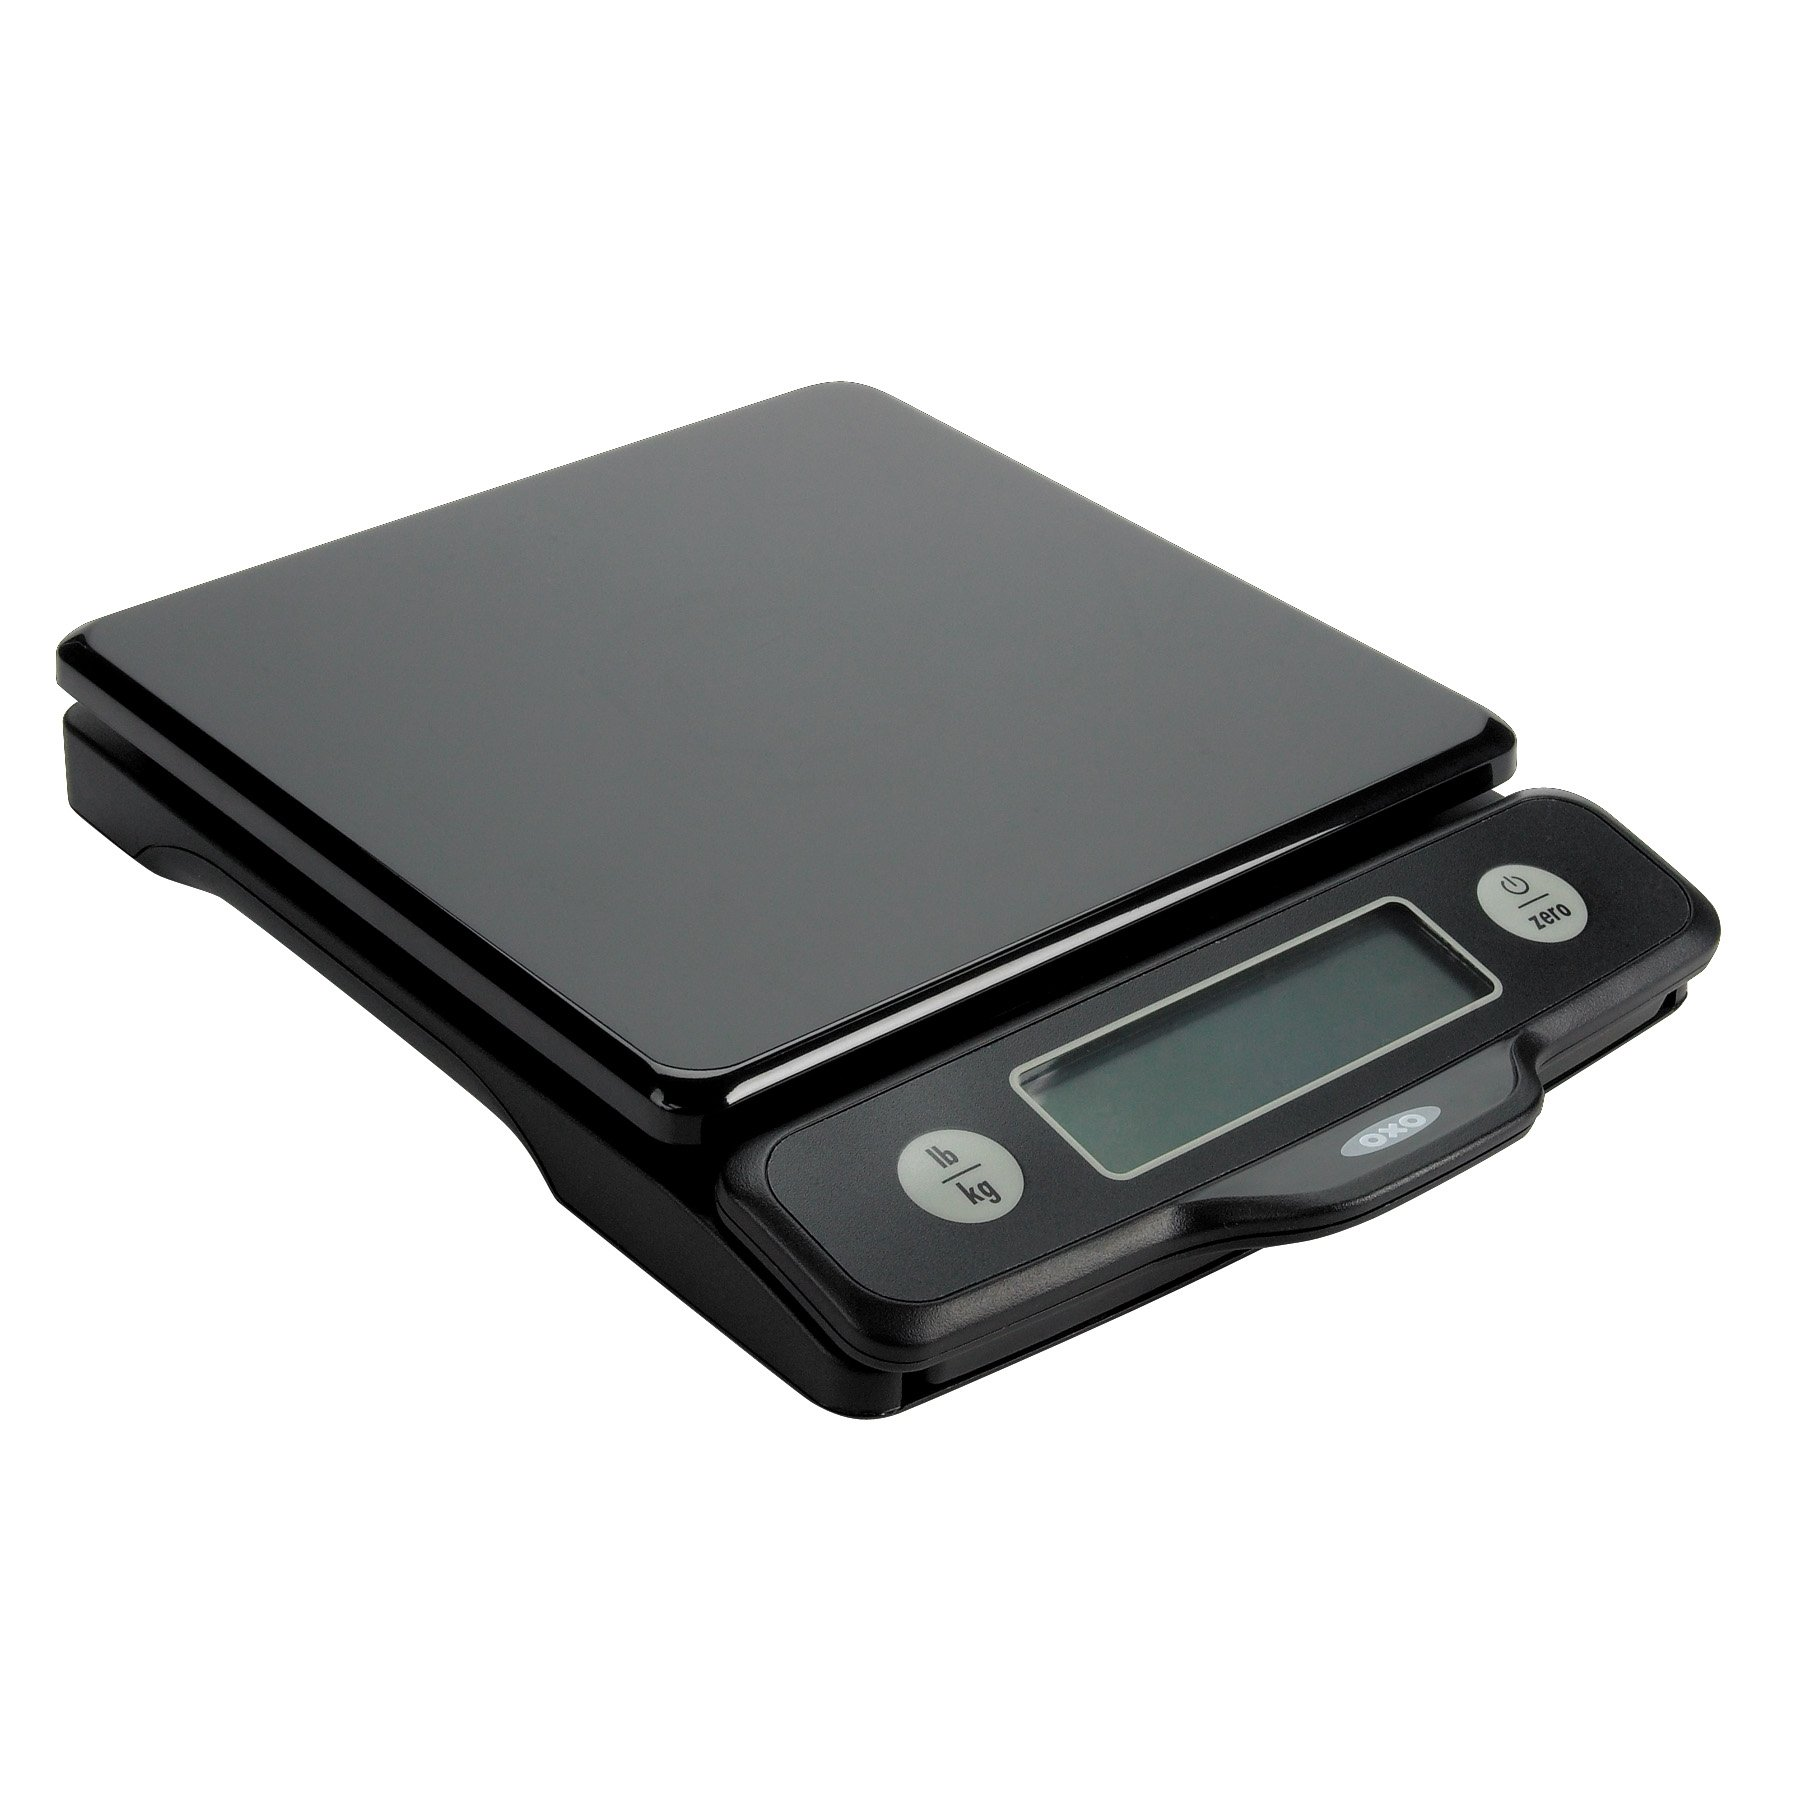 OXO 1157100 Digital Food Scale, Pull Out, 5 lb, Black